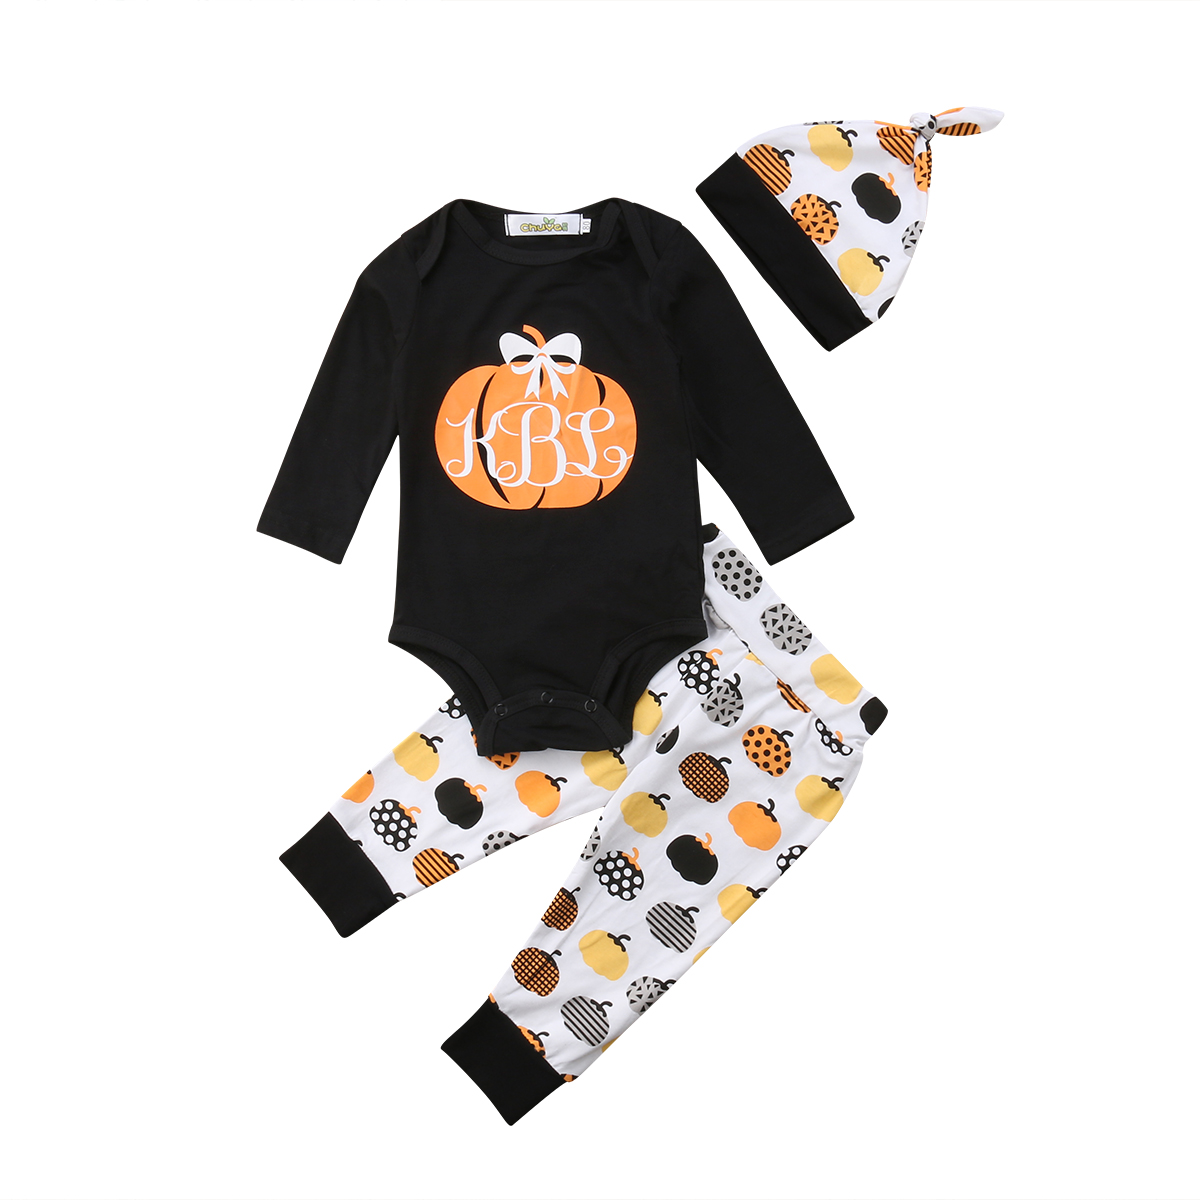 2018 Latest Childrens Wear Newborn Infant Baby Boy Girl Cotton Toddler Pumpkin Tops Bodysuit Pants Halloween Outfits Clothes